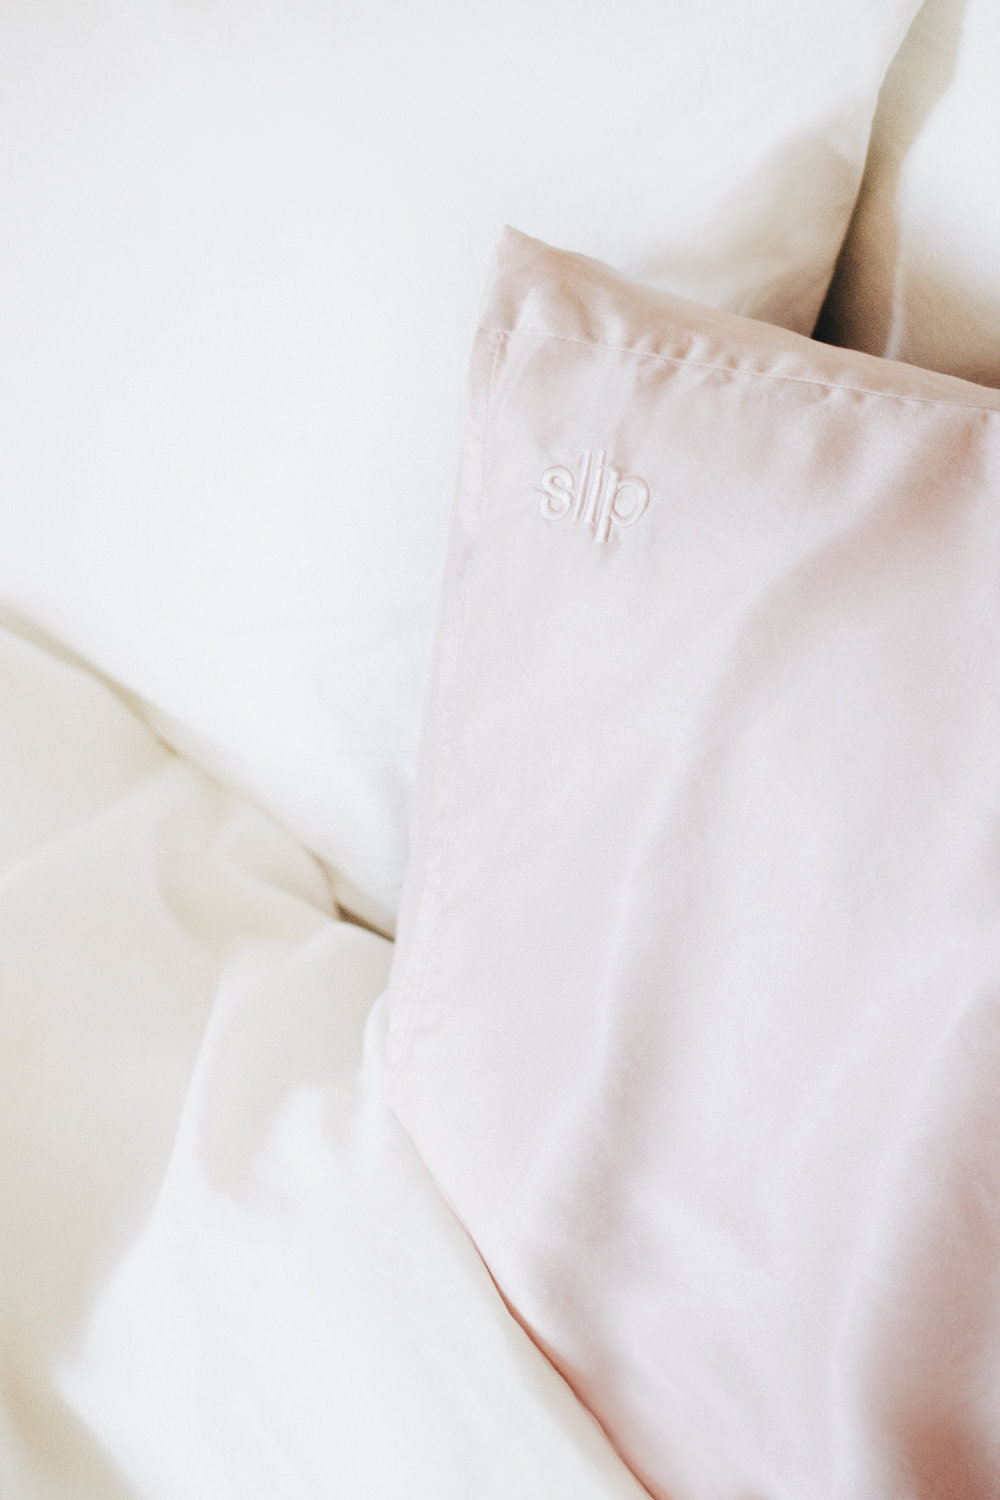 Investing in a silk pillowcase - Waking up with sleep creases on your face isn't an attractive look and as I have done many a time, it's even worse when you've rocked up to work with them still there! Sleep creases are actually an indication of damage from sleeping on a cotton pillowcase and when I saw that my sister had a Slip Pure Silk Pillowcase - which came highly rated from her - I decided to invest in one of my own. Having had mine for about six months now, these luxury pillowcases are a treat for both the skin and the hair as they're really gentle and never pull or tug on our delicate features. Sleep creases can turn into wrinkles over time, which the Slip Pure Silk Pillowcase helps prevent and they're even said to be more hydrating. As cotton is more absorbent than silk, this means cotton pillowcases can draw moisture from your skin and take away from our expensive night creams, so if you have a dry skin type like I do, investing in a silk pillowcase is ideal. Silk also breathes a lot better than cotton, meaning it'll keep you cool in summer and warm in the winter. On hot summer nights, I love flipping over my pillows to the cool side, but now I don't need to!